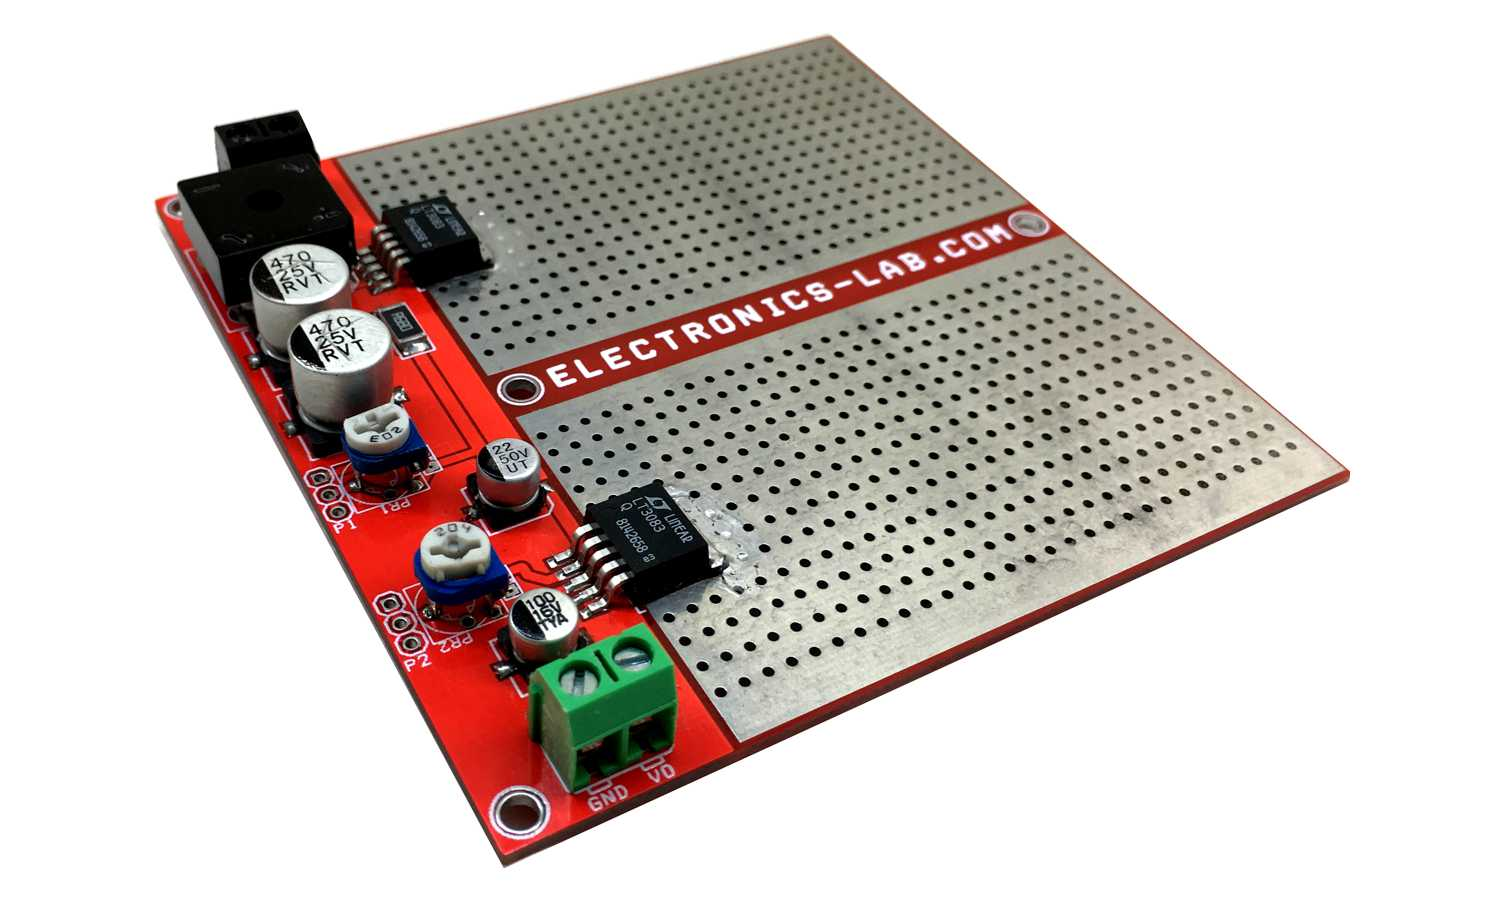 0 to 10 V Adjustable Lab Power Supply with Current Control